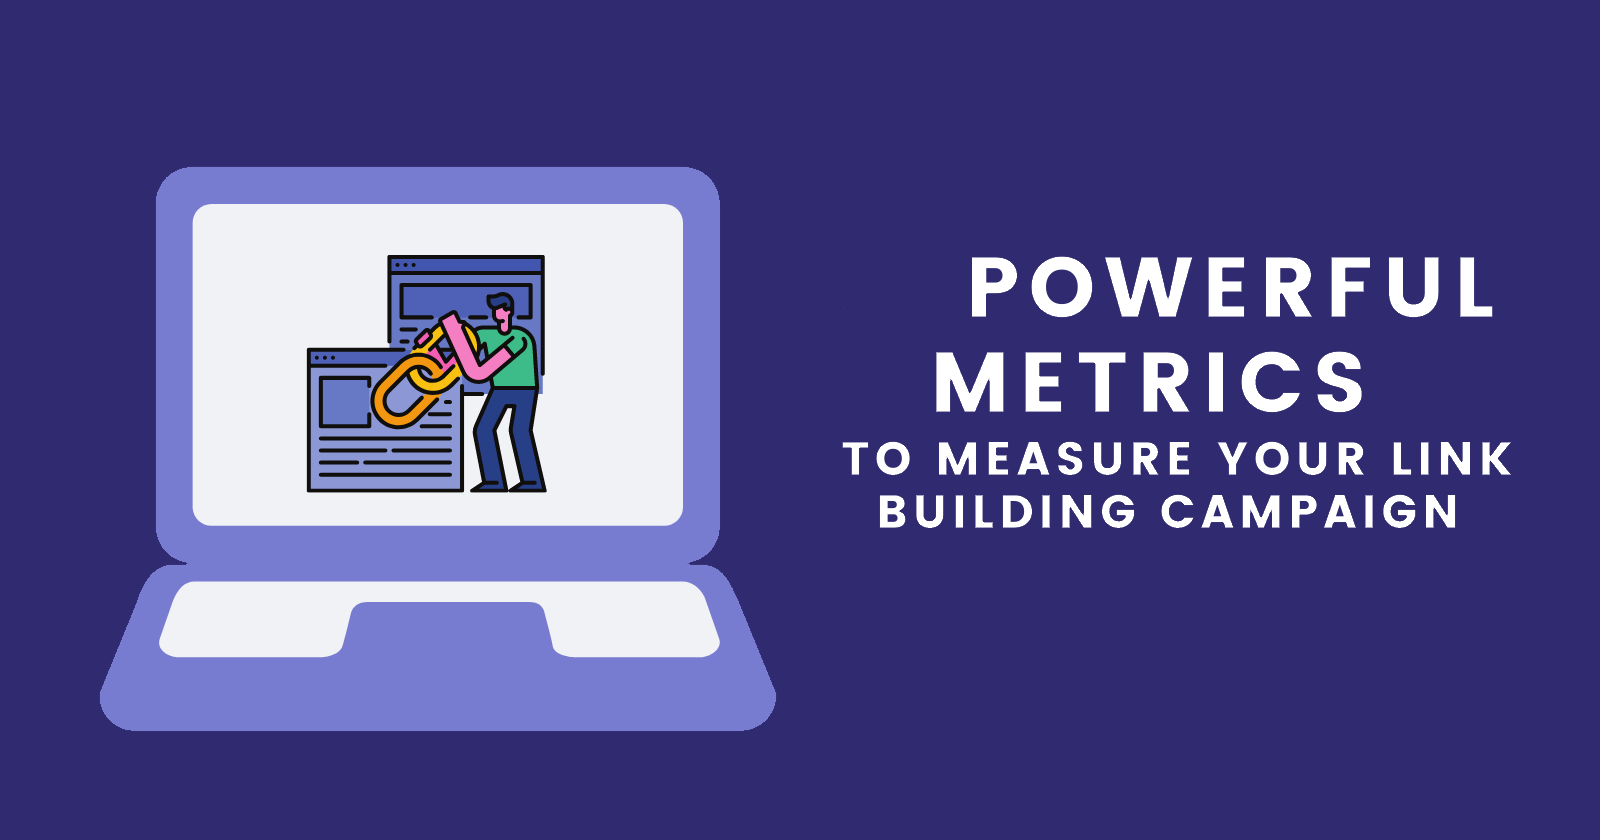 3-powerful-metrics-to-measure-your-link-building-campaign-5eb01a06bfb58.png